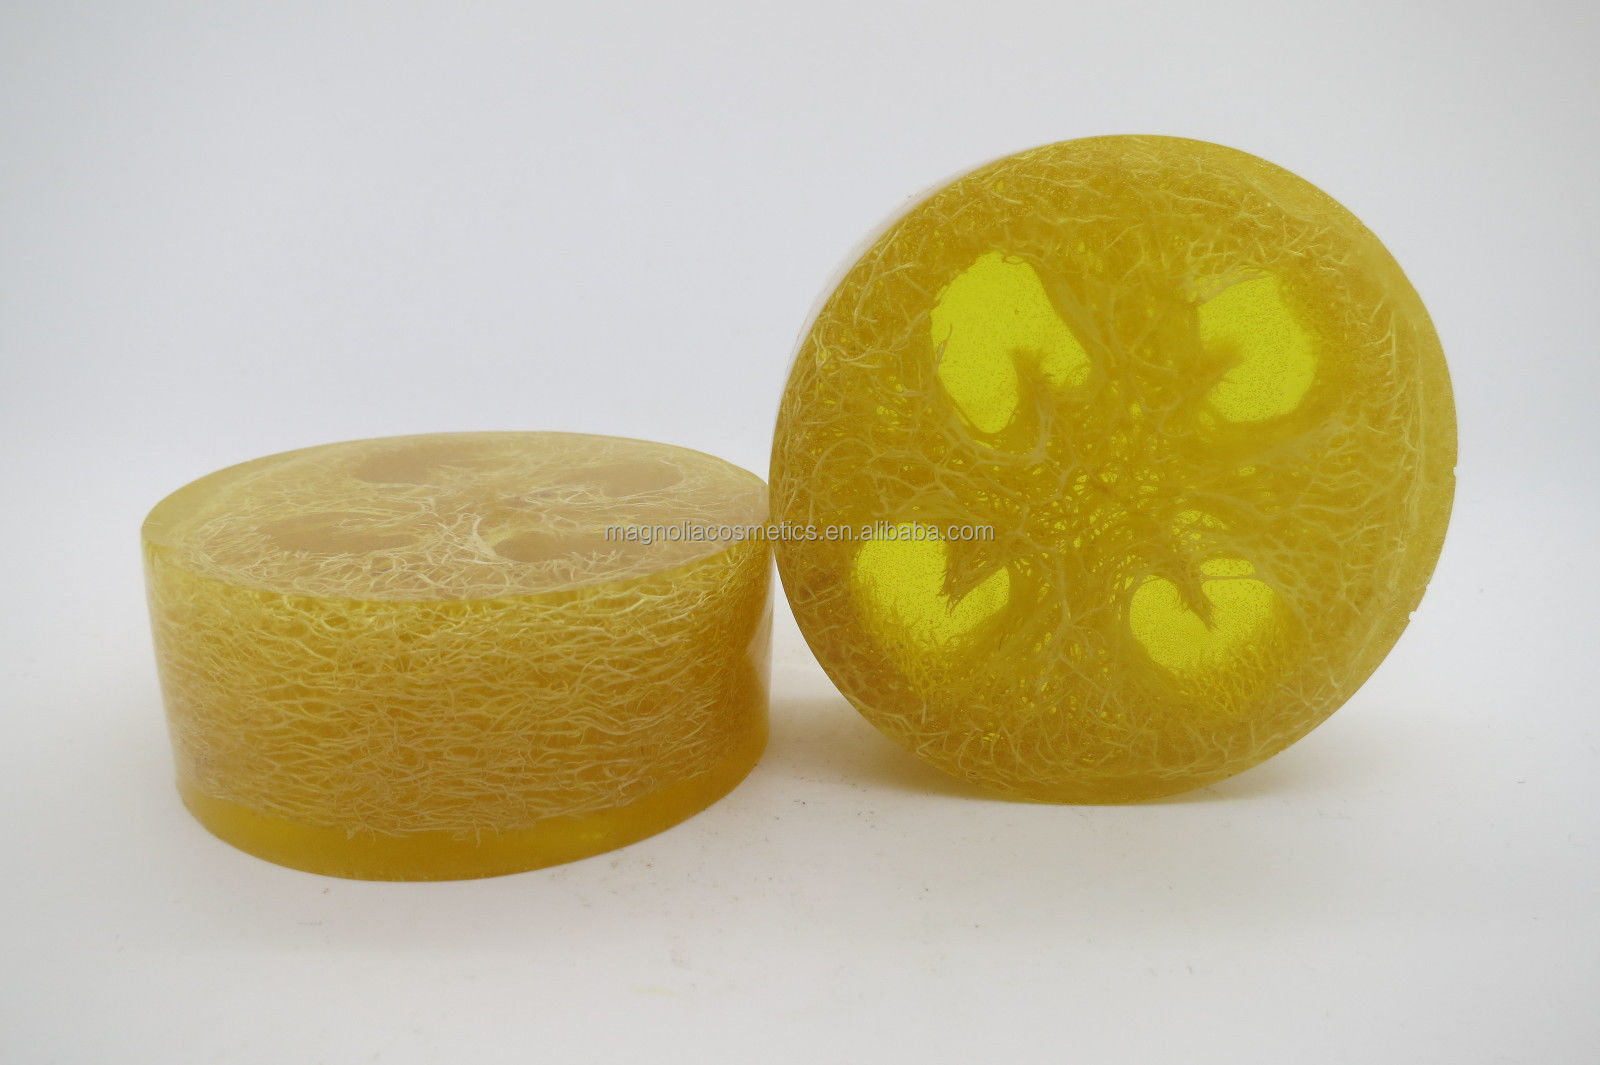 Fruit Exfoliating Soap for skin care